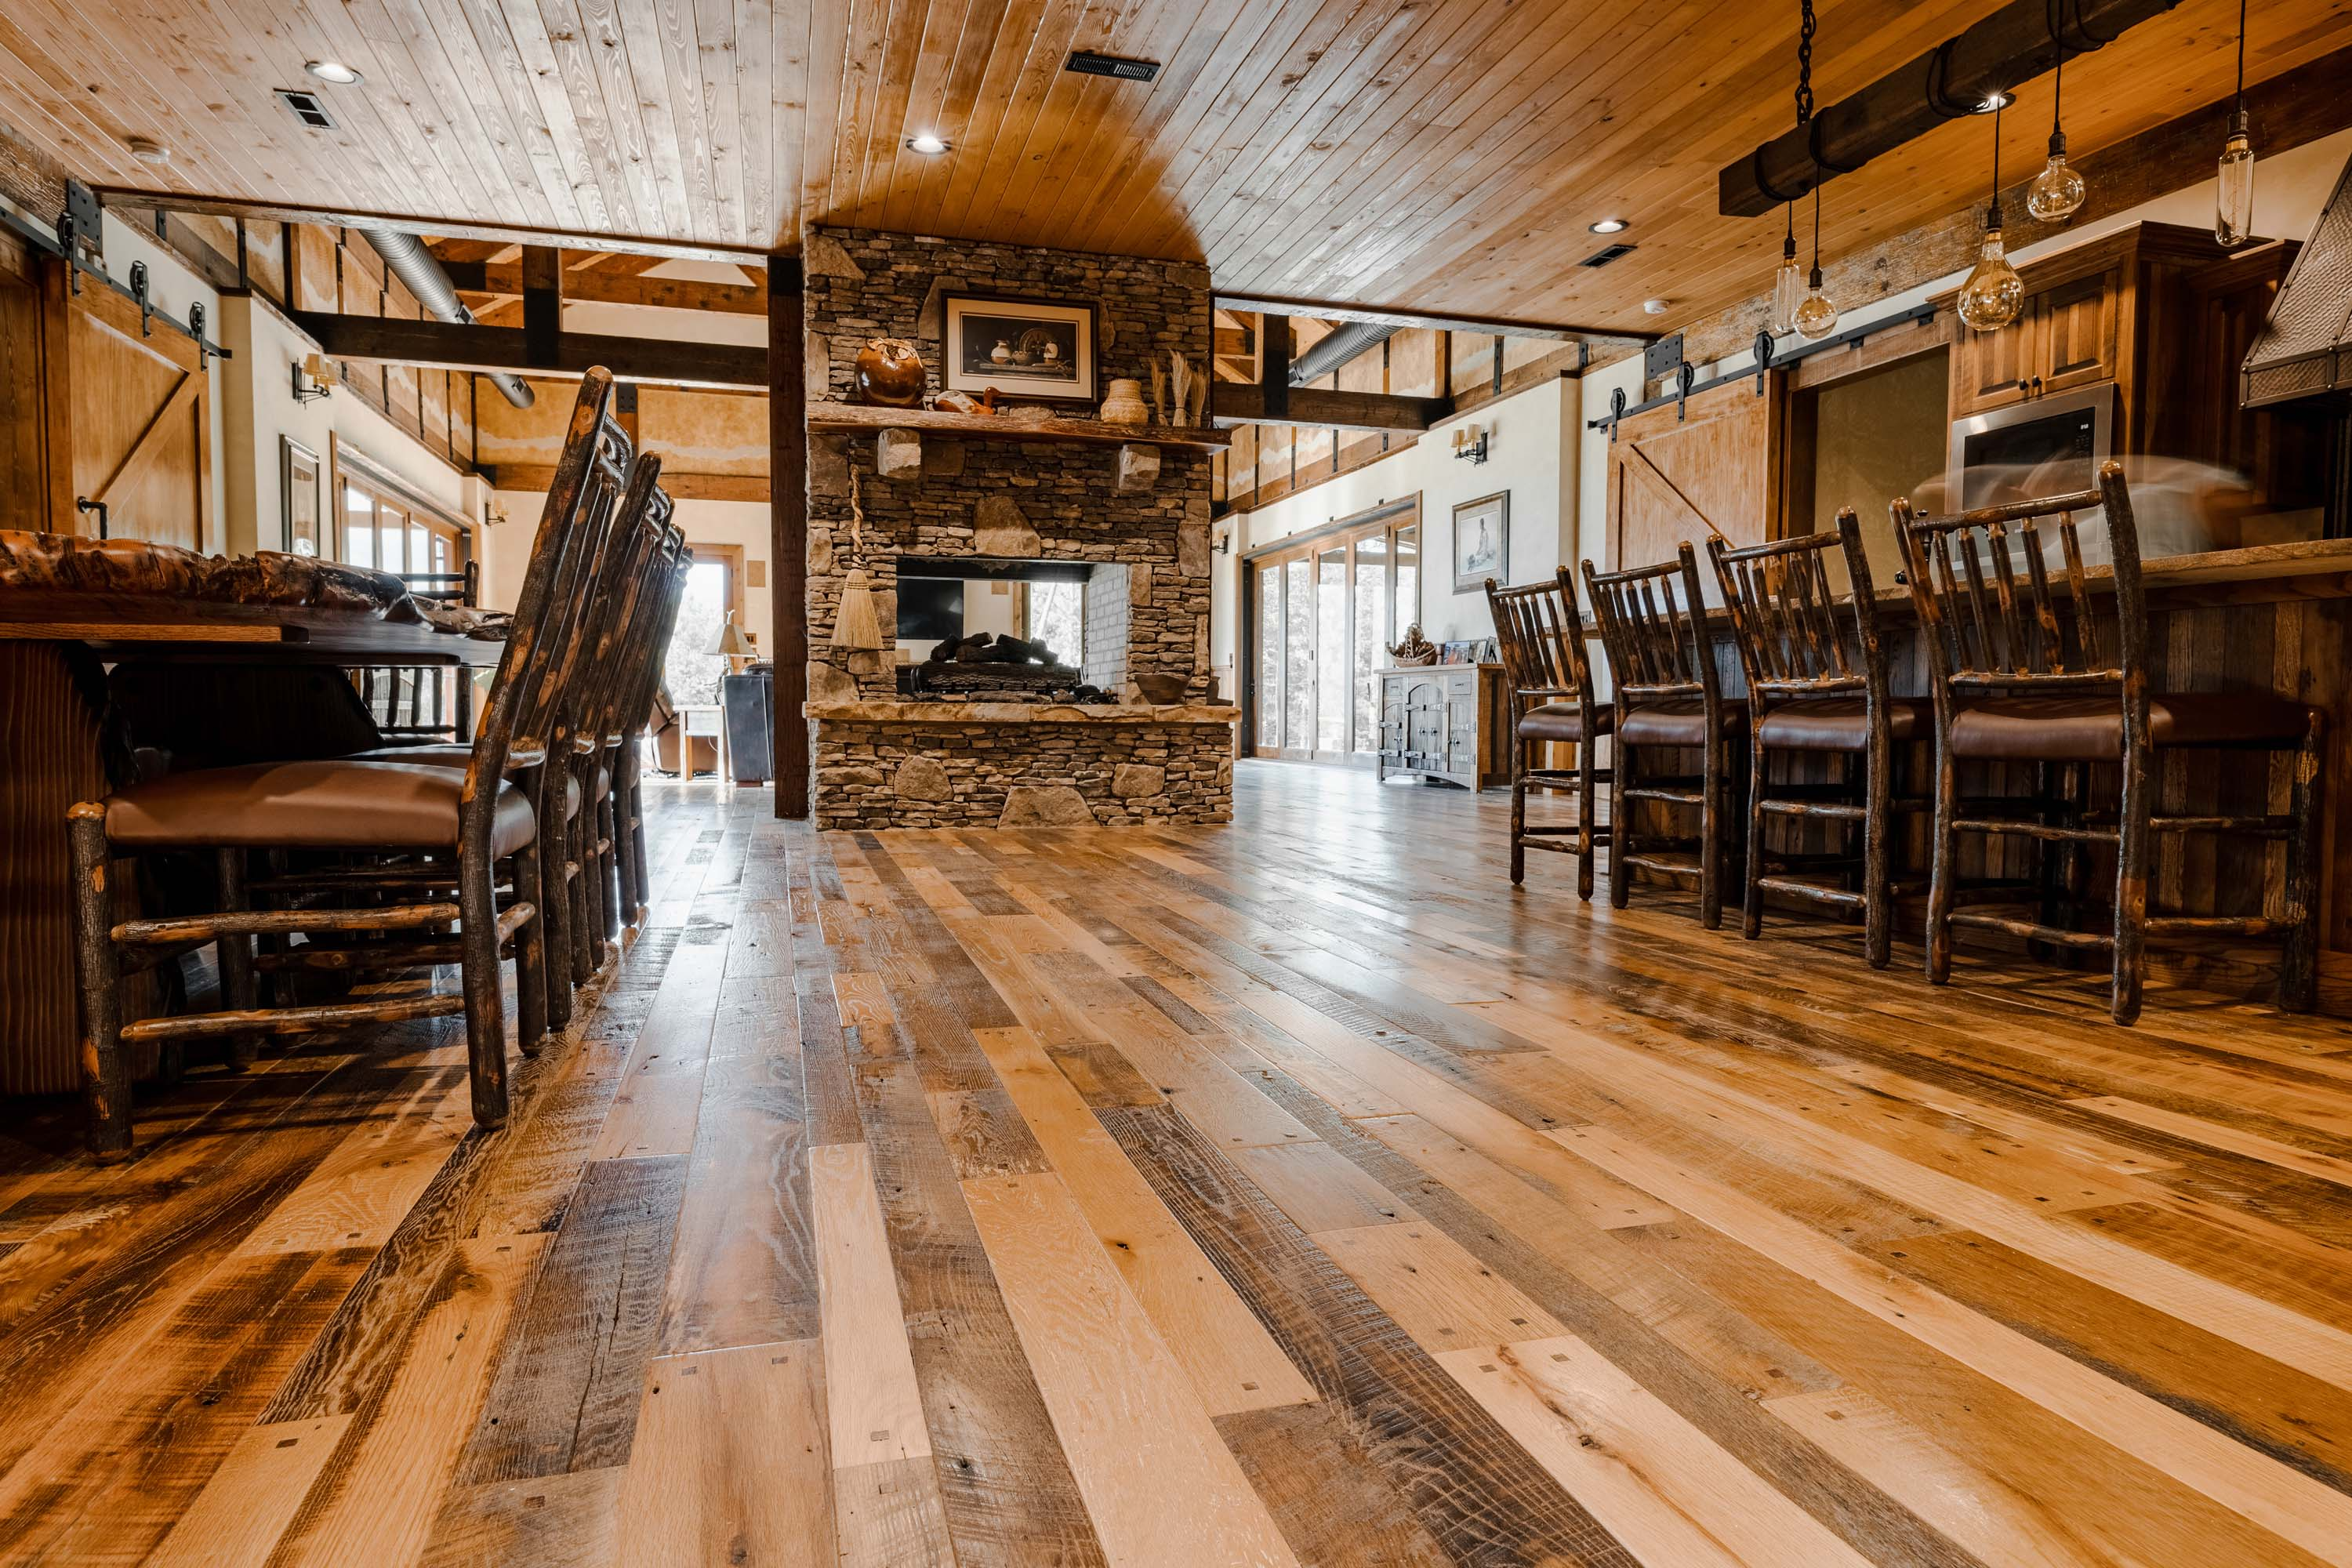 A dining room area in a cabin style house with reclaimed americana reclaimed wood flooring by Tennessee Wood Flooring. This hardwood floor is authentically made in the east tennessee area.